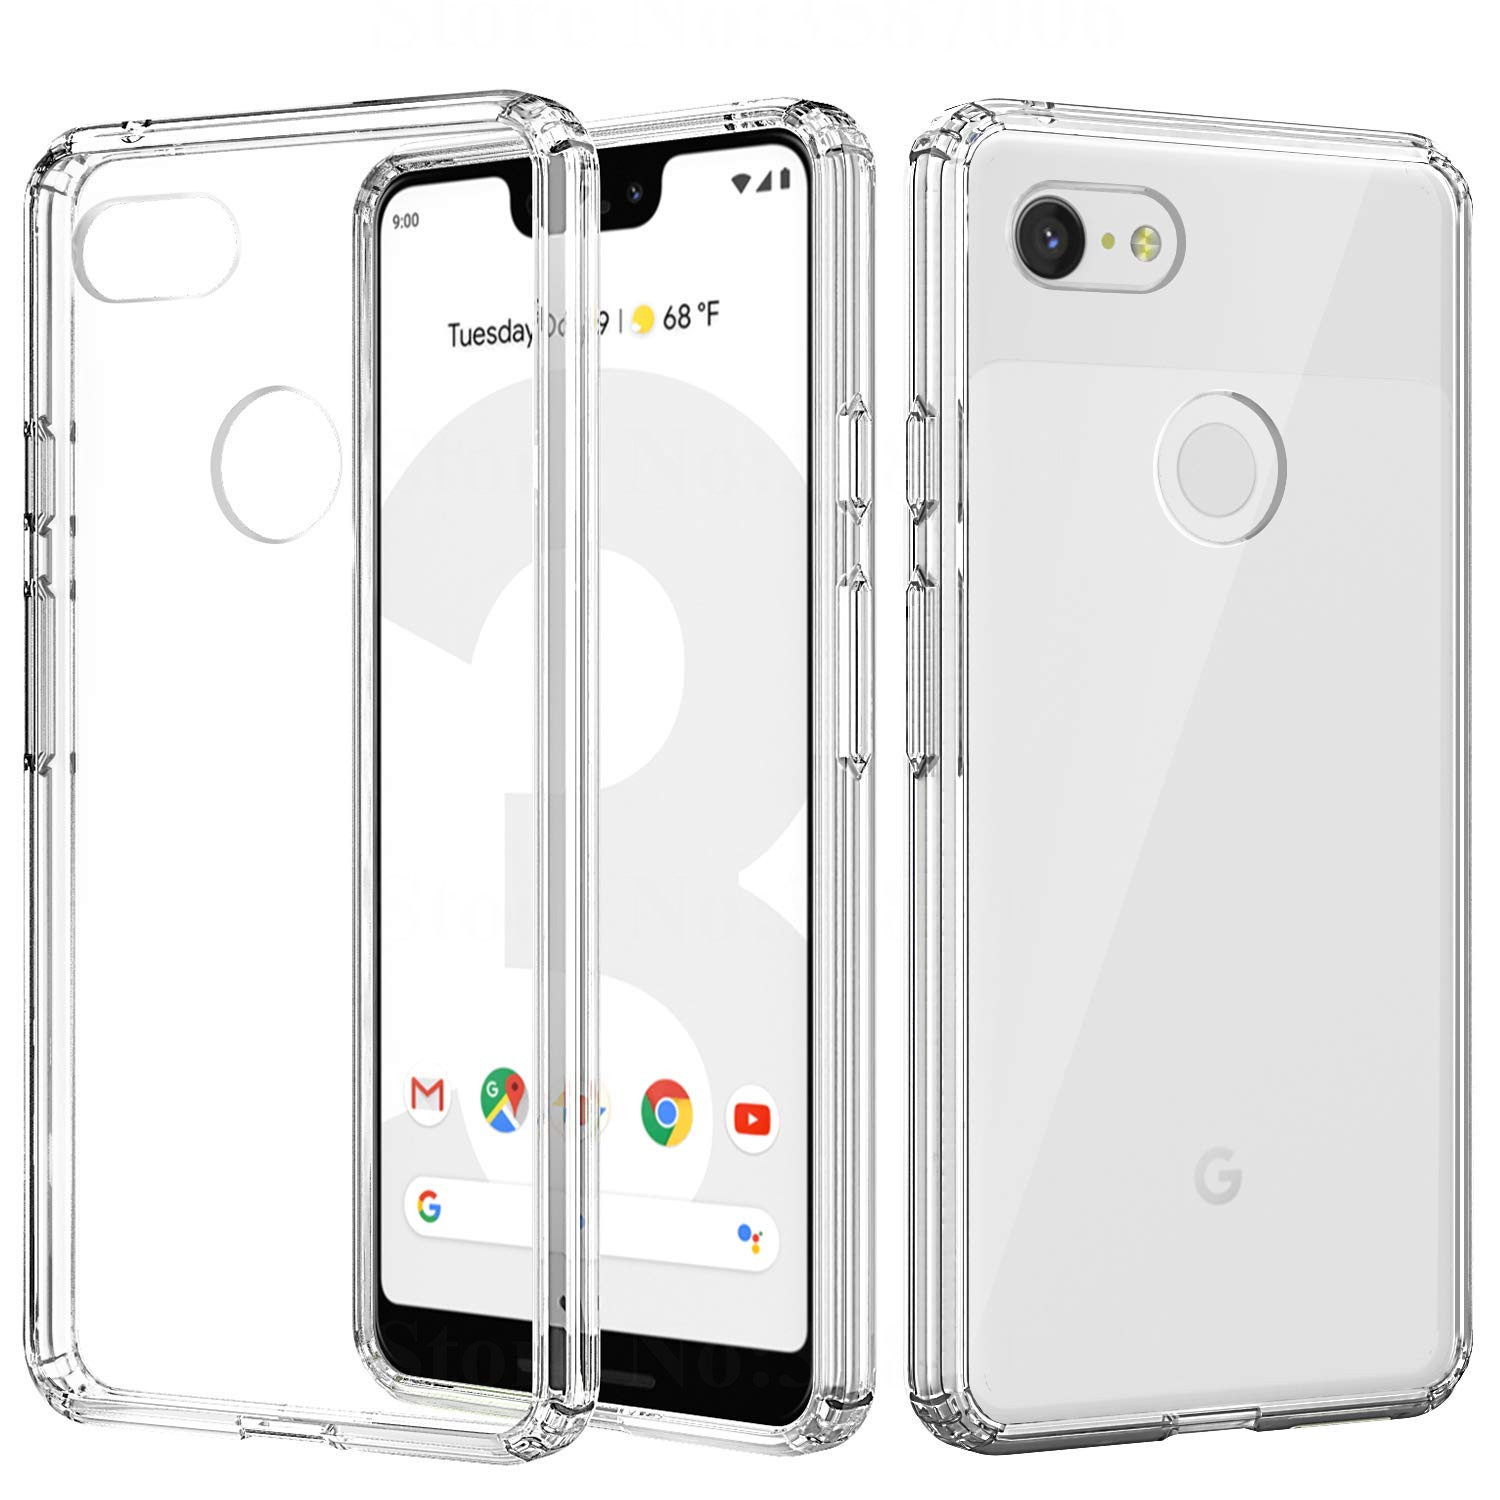 more photos a83cd 51bab Clear Soft Silicone Back Cover Phone Case For Google Pixel 3 XL Pixel 2 XL  Transparent Case For Google Pixel 3 2 Case Cover